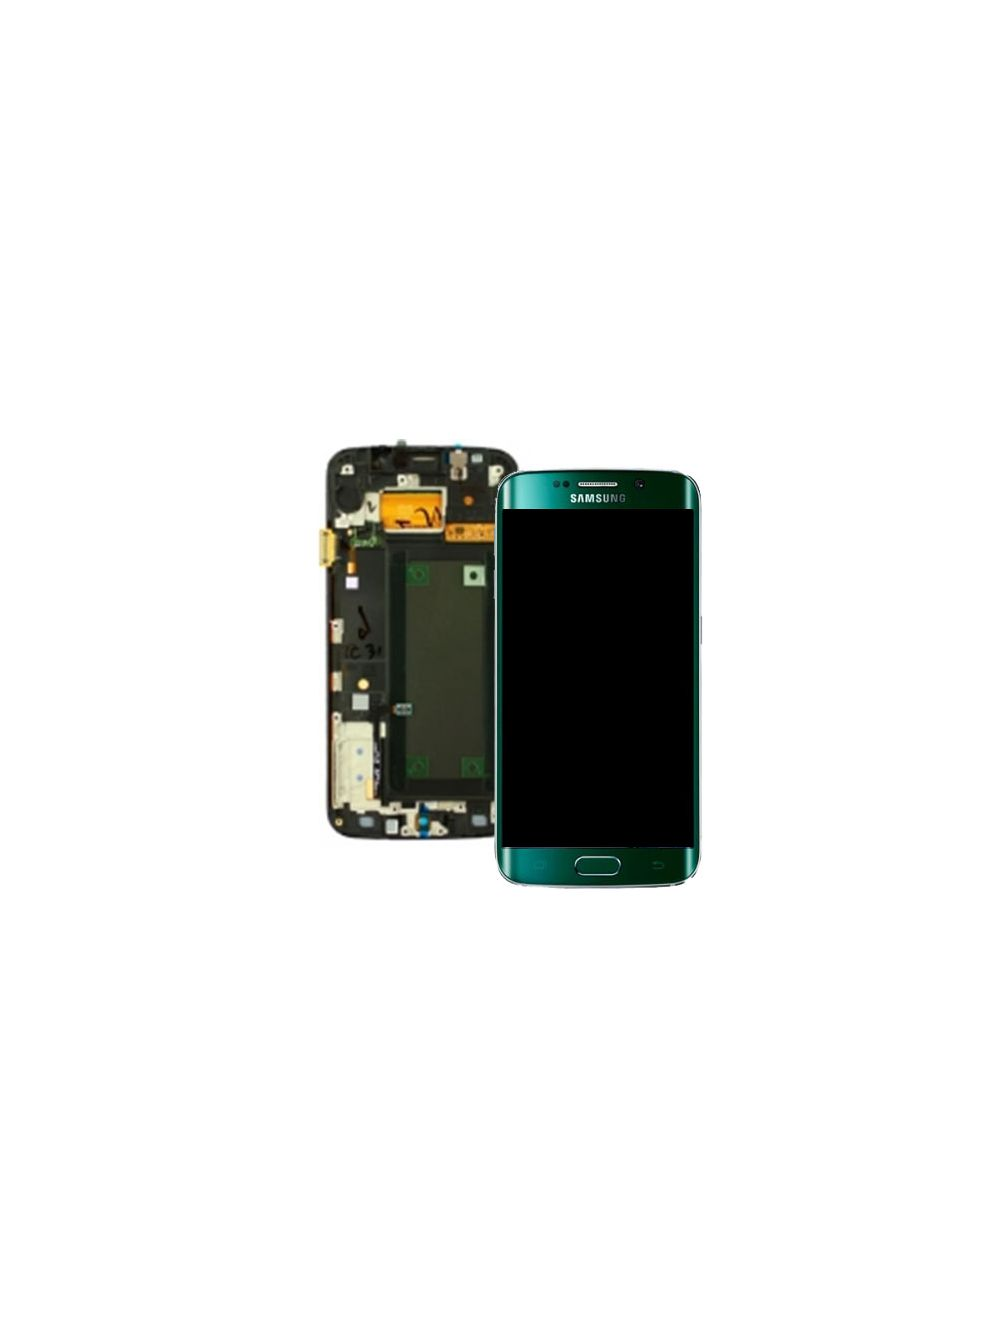 Samsung Galaxy S6 Edge LCD Screen Replacement Part